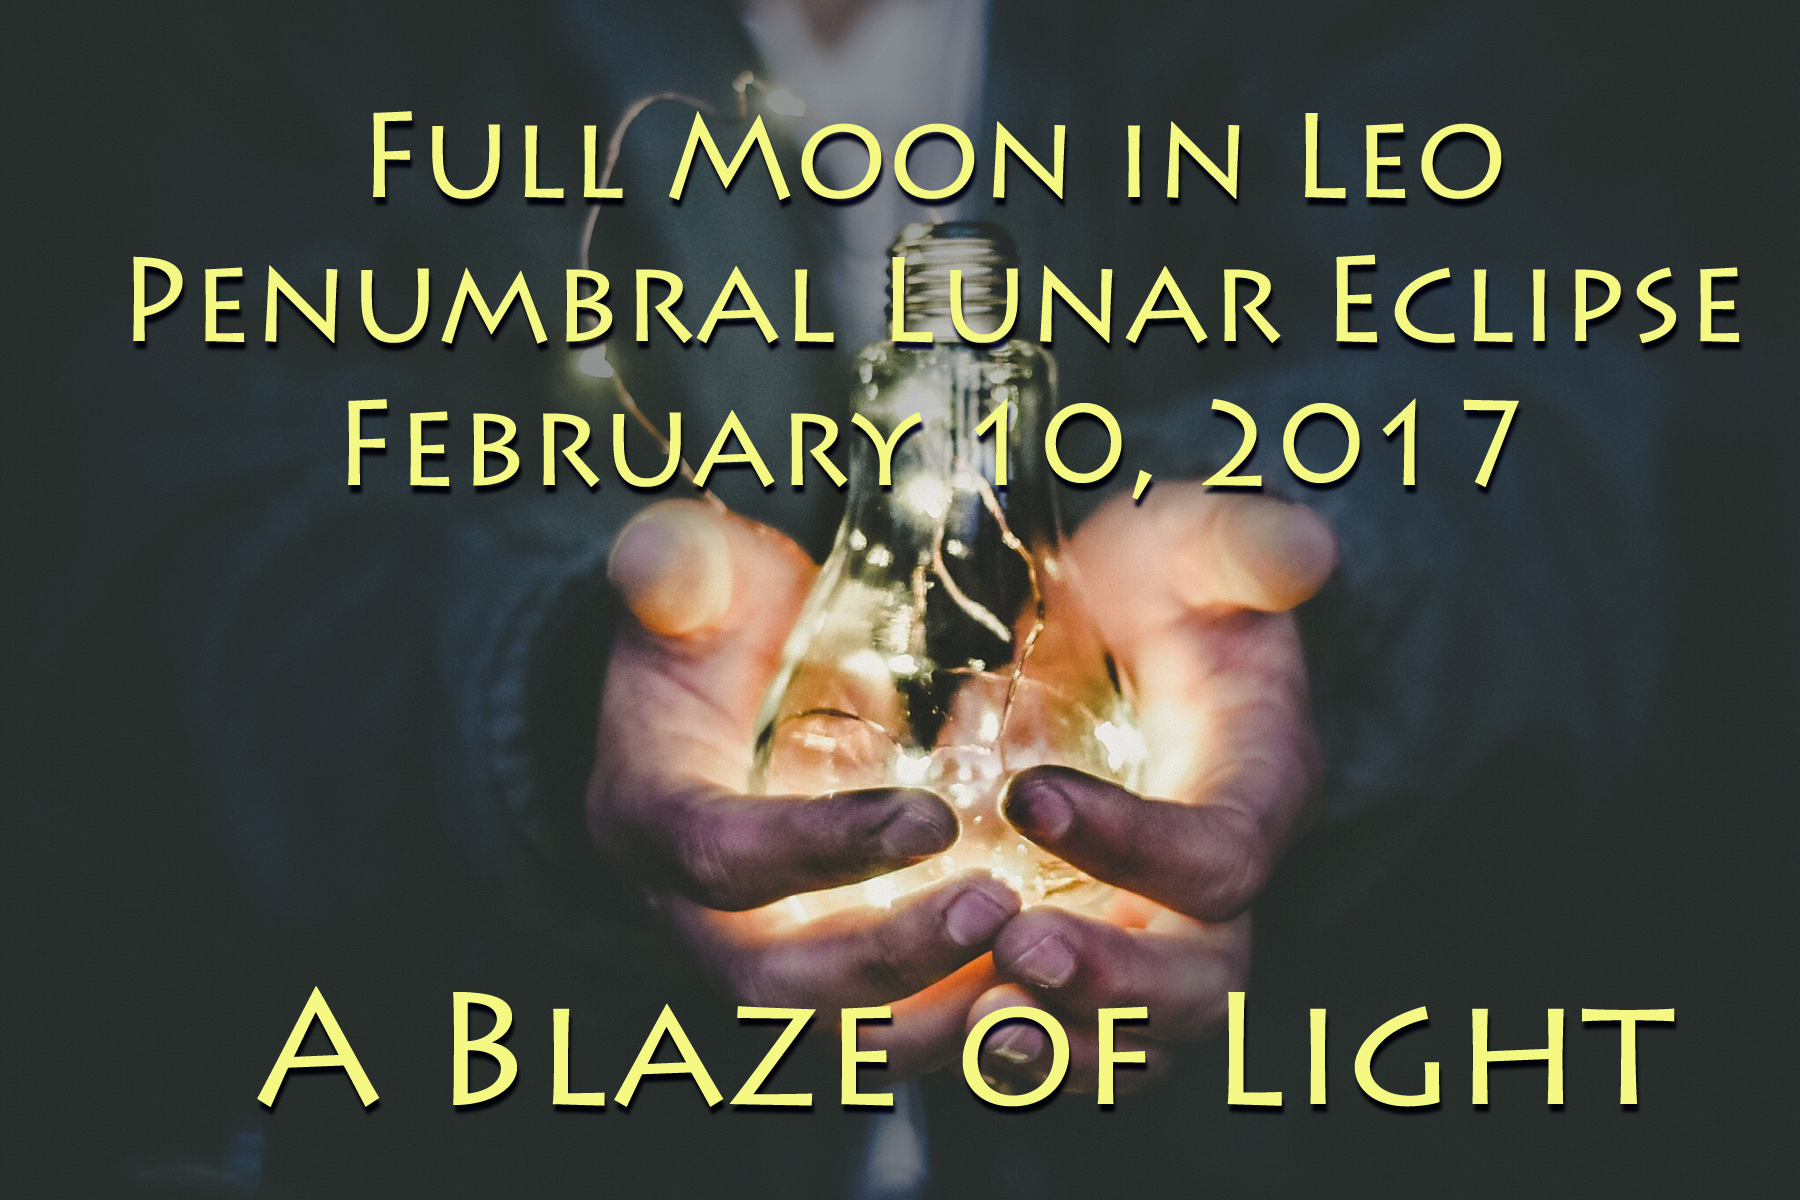 Full Moon in Leo: A Blaze of Light